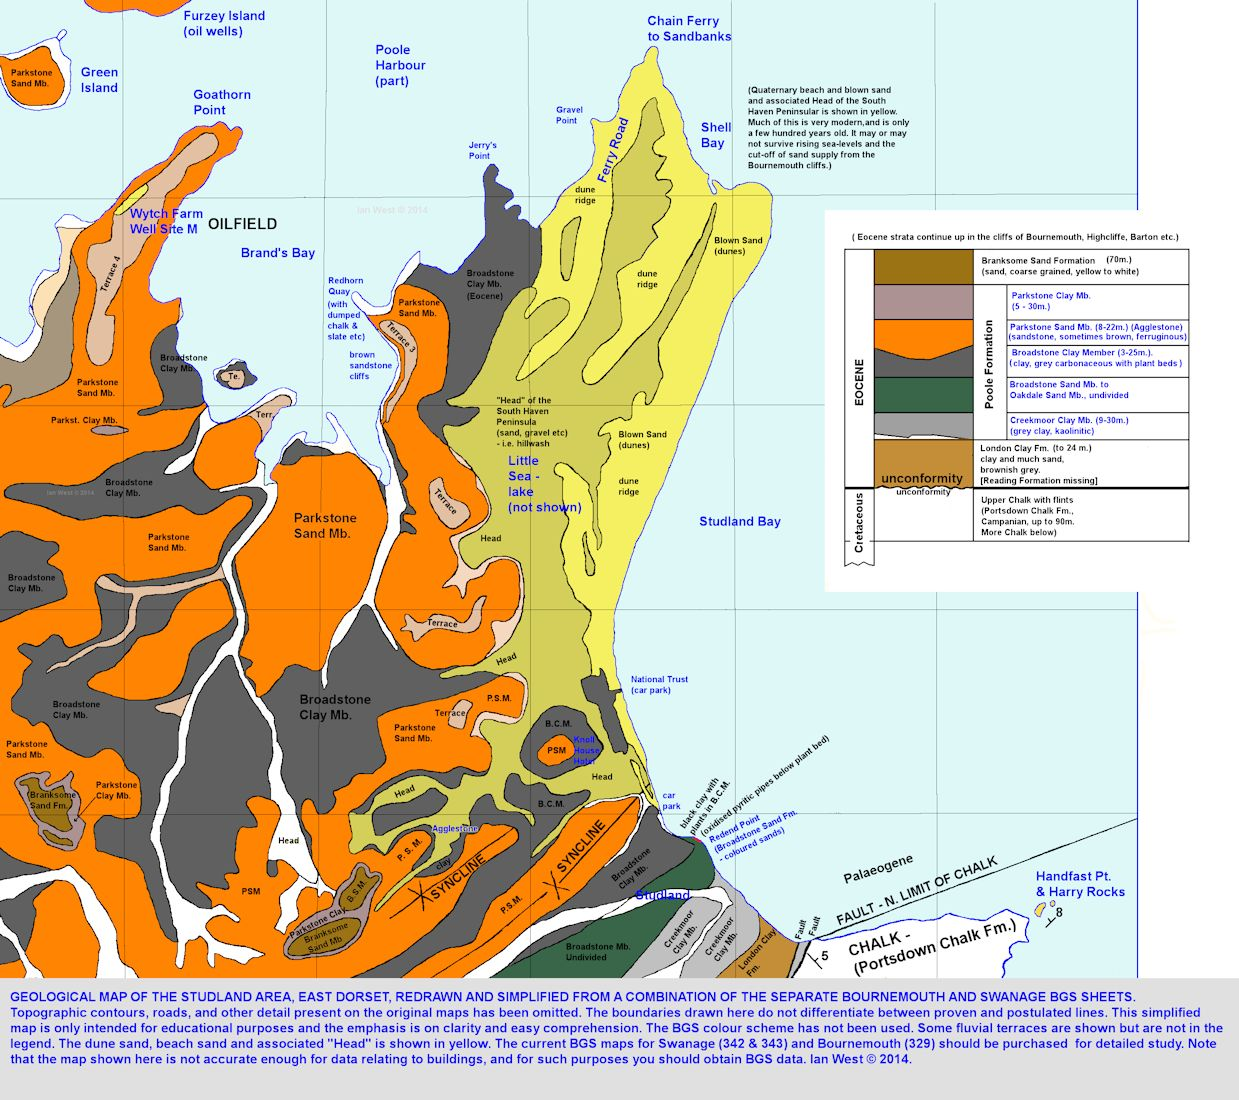 A simplified geological map of the South Haven Peninsula and Studland, Dorset, based on modern geological maps, but completely redrawn, 2014